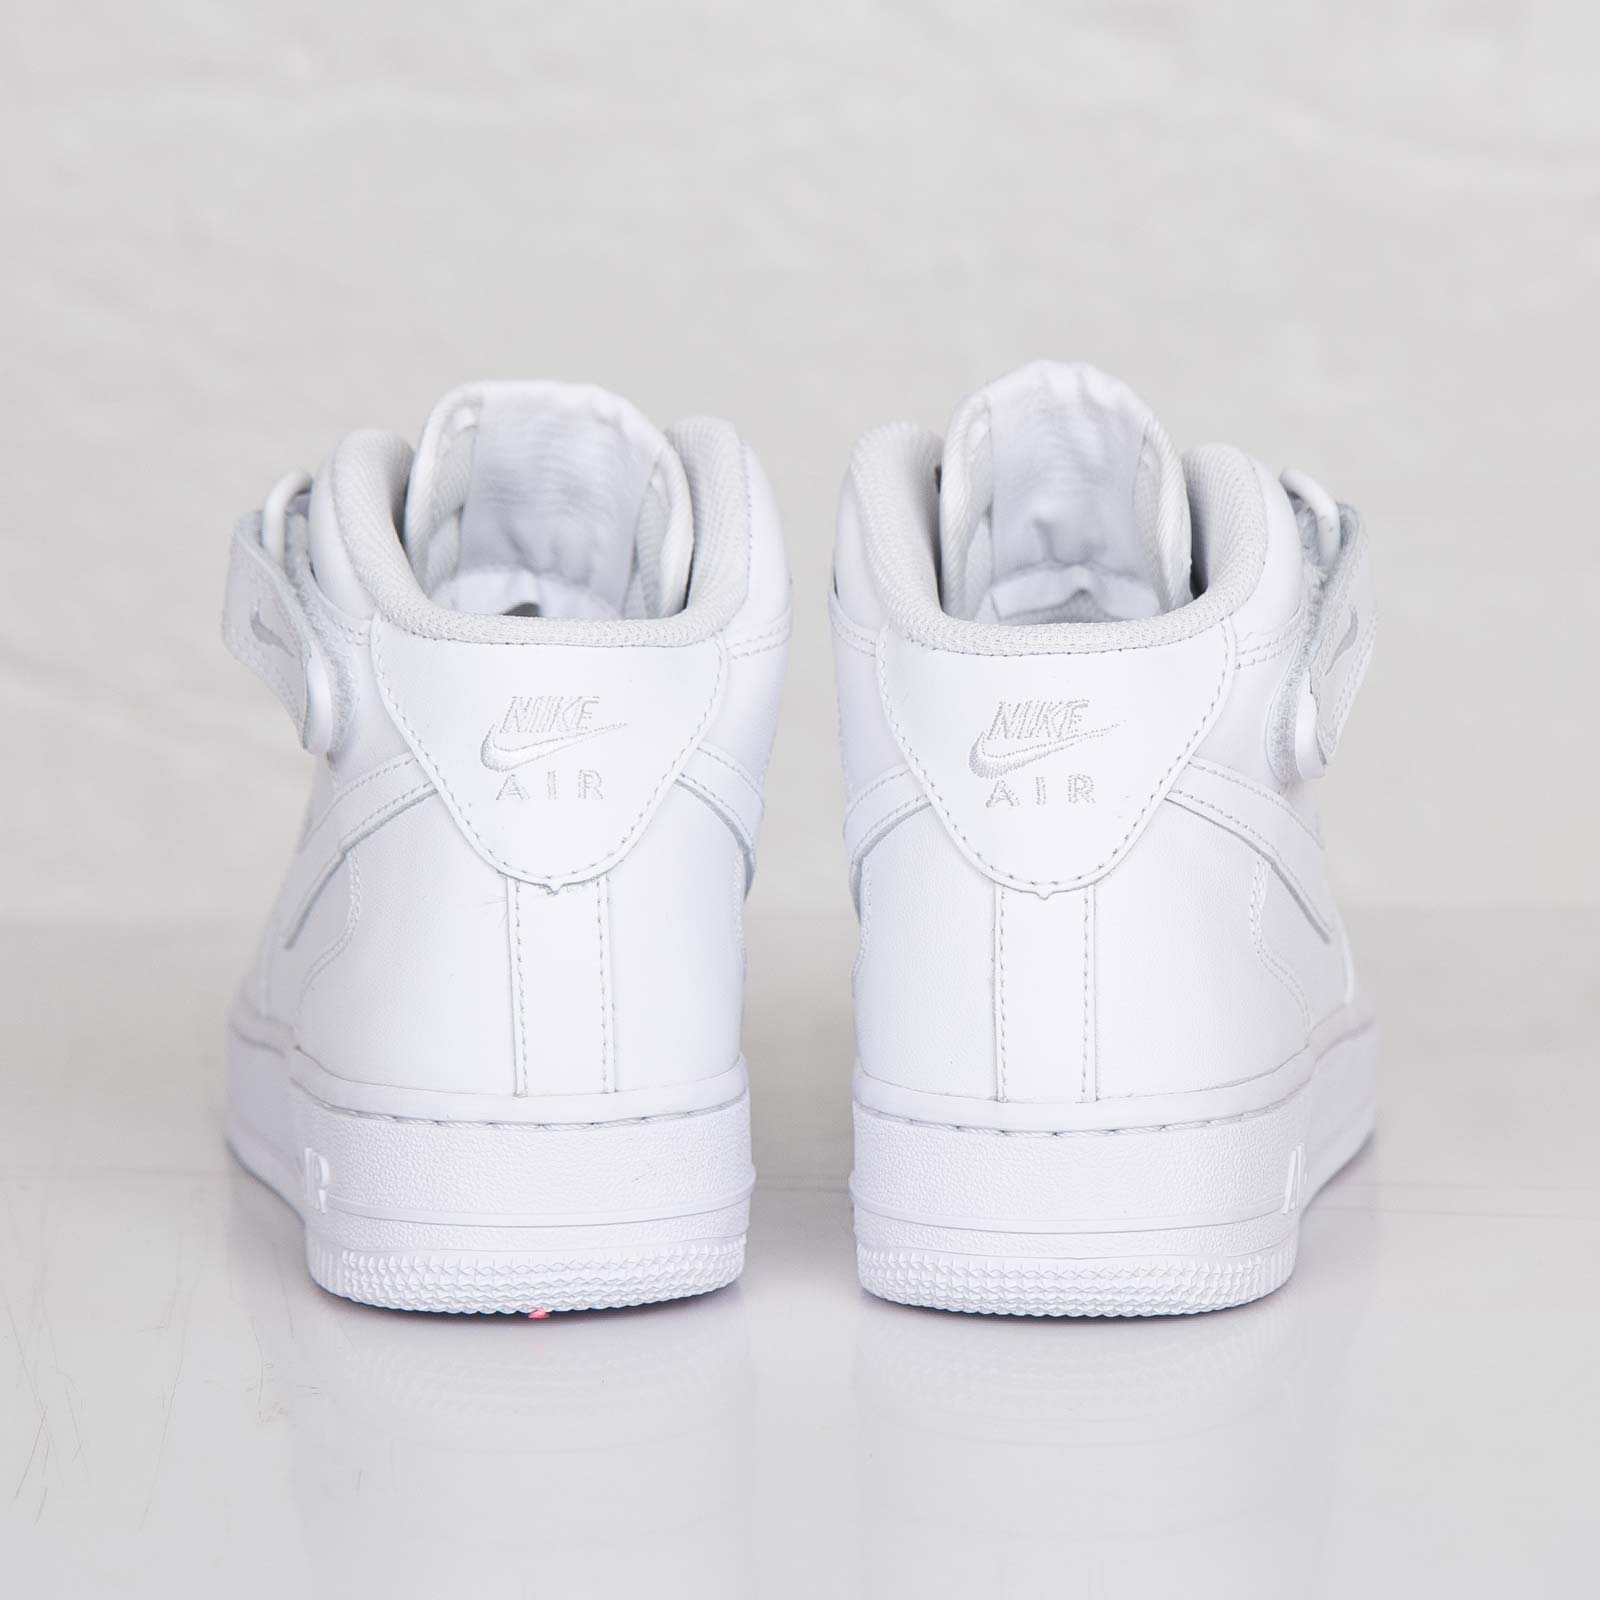 ecf69413bb02 Nike Wmns Air Force 1 Mid 07 LE - 366731-100 - Sneakersnstuff ...